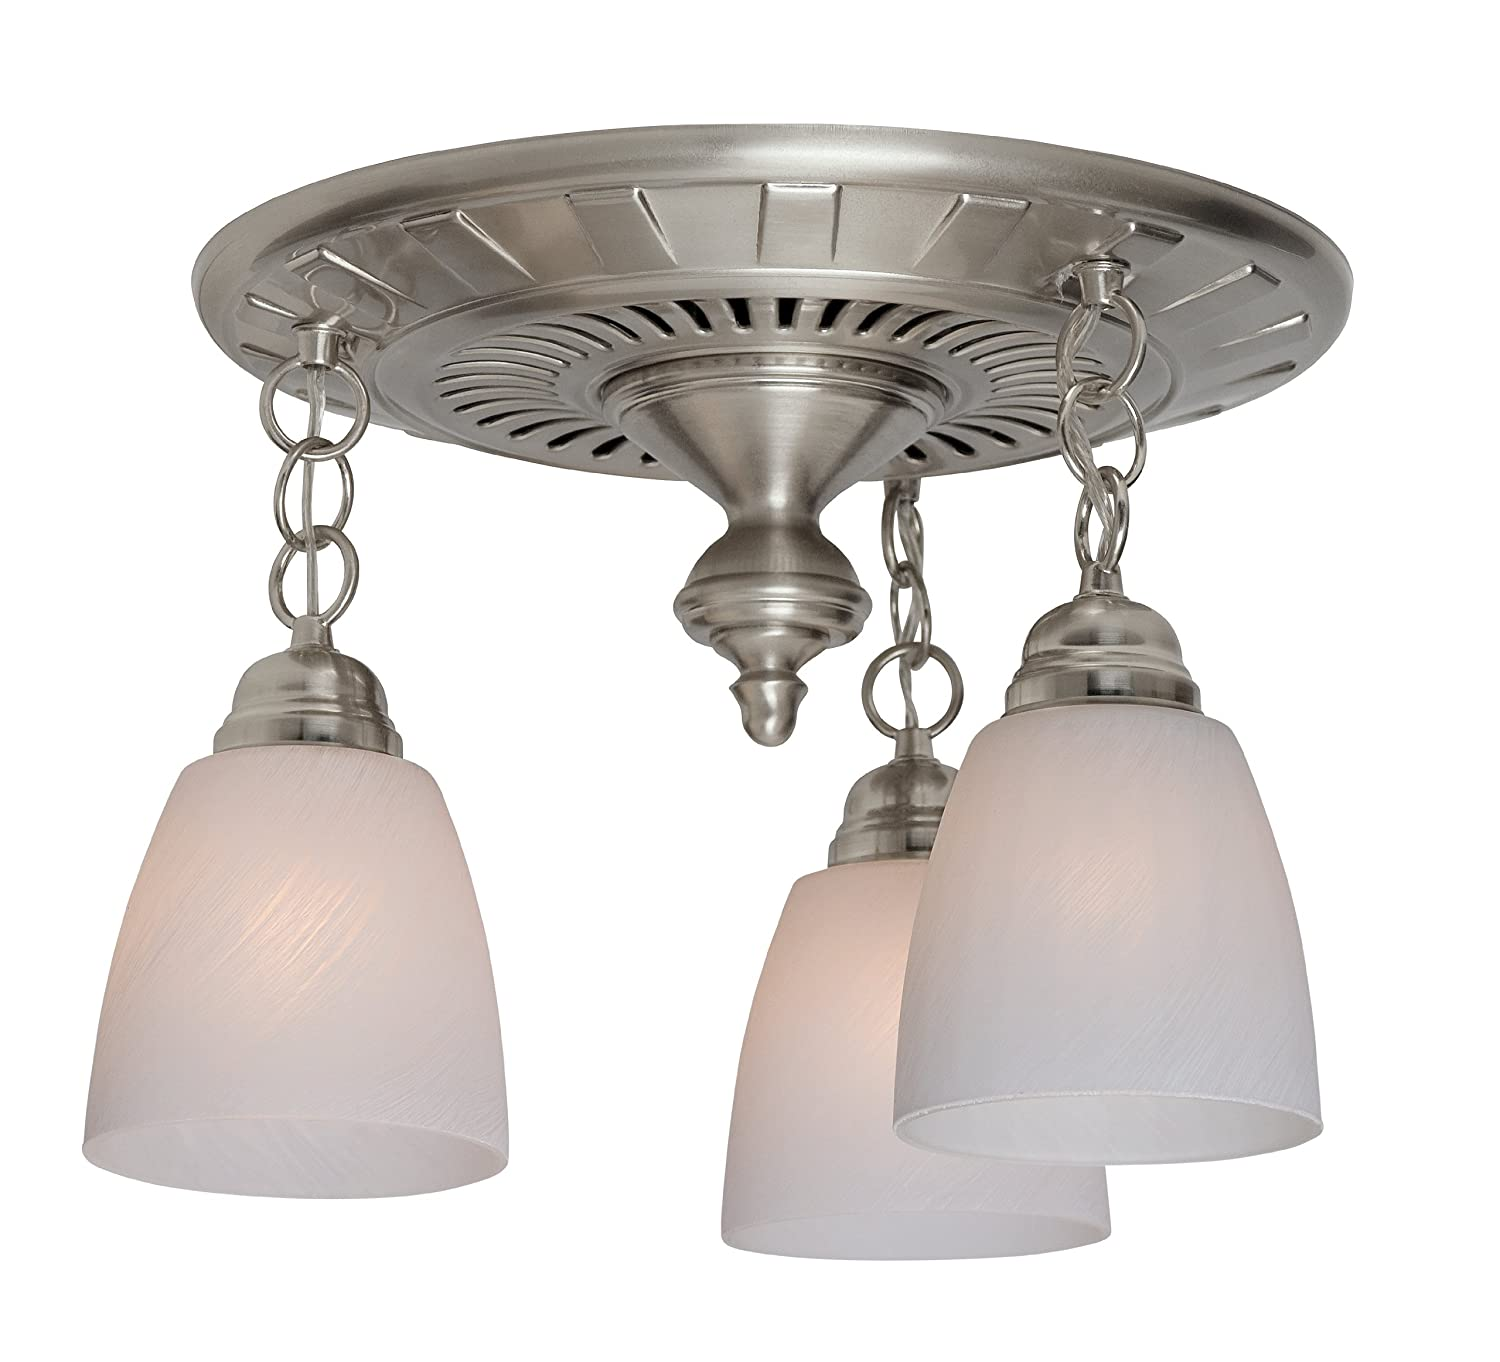 Hunter 80705 Garden District 70 CFM 3 Light Bathroom Fan, Brushed Nickel  With Silk Road White Glass Shades   Vanity Lighting Fixtures   Amazon.com